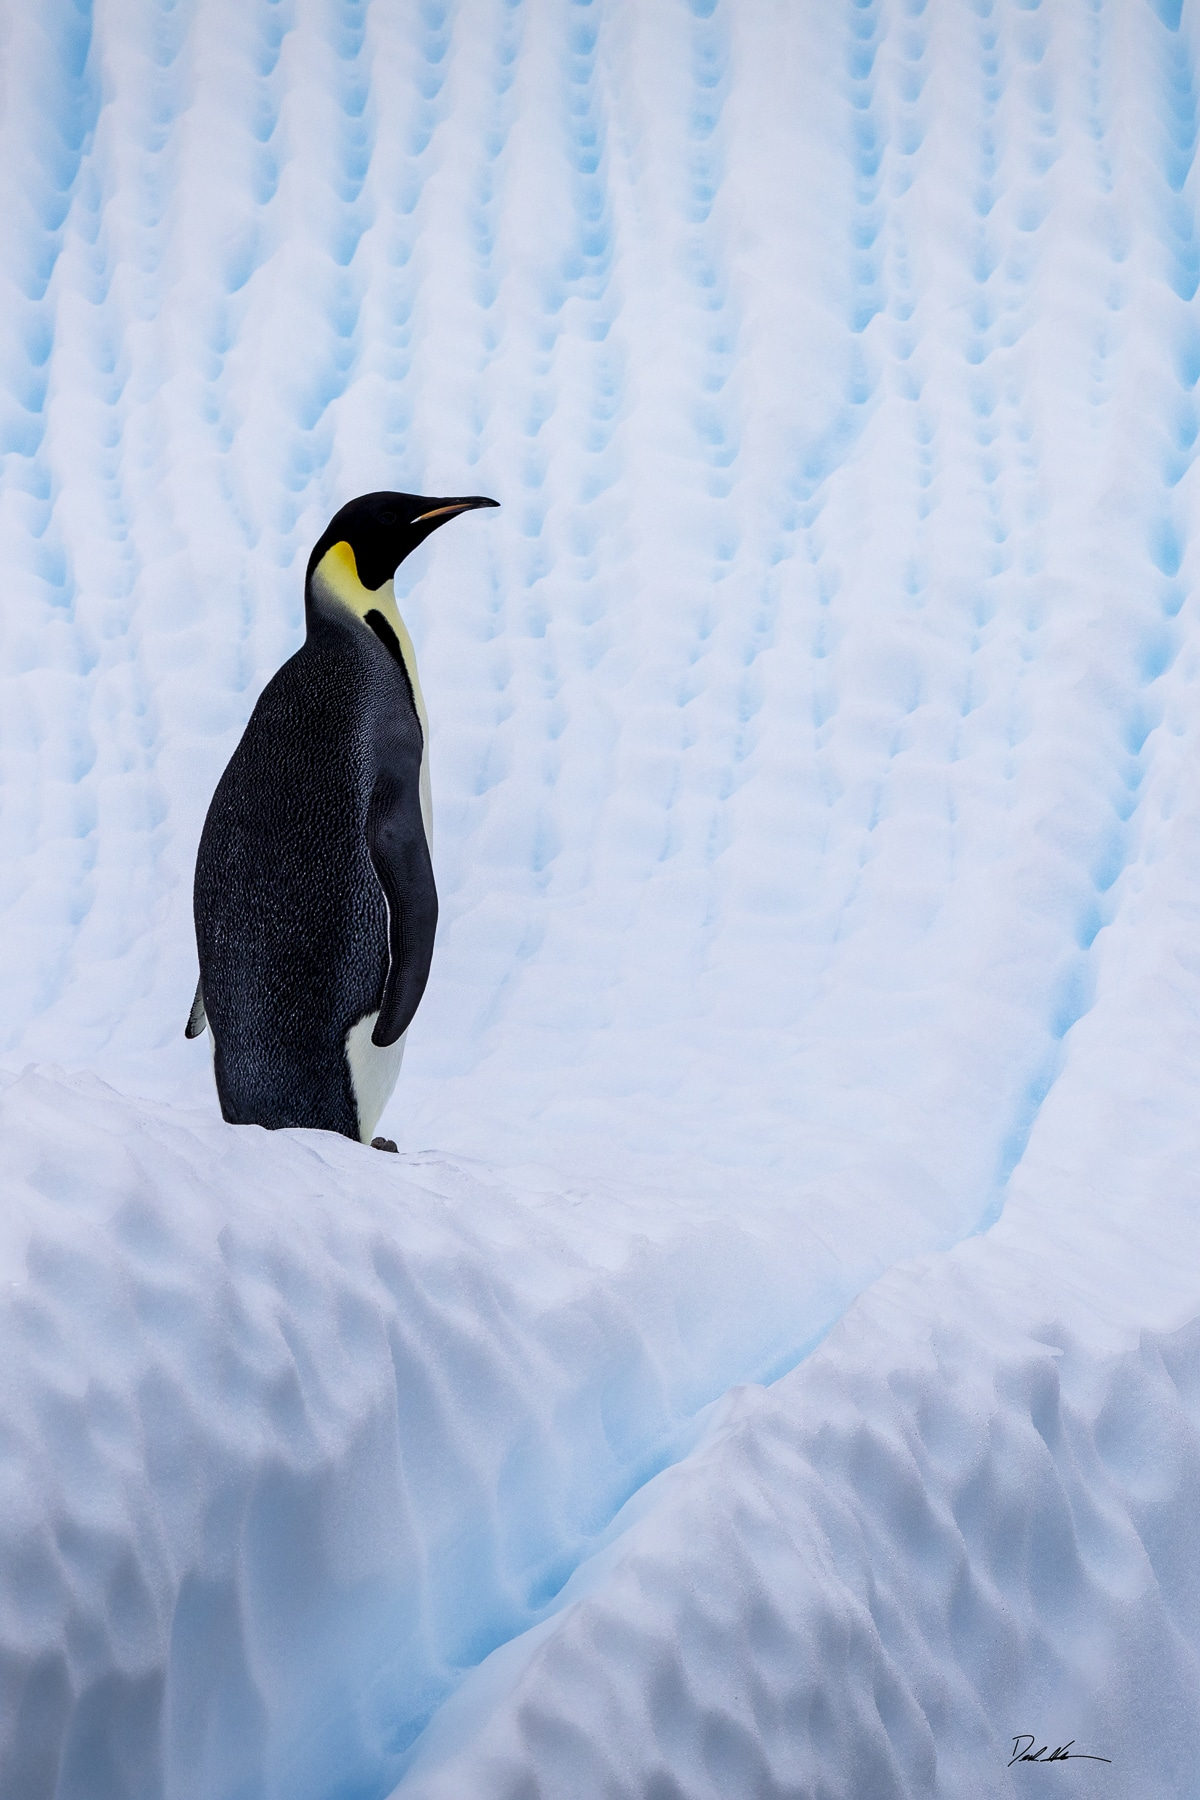 Emperor penguin on interesting iceberg